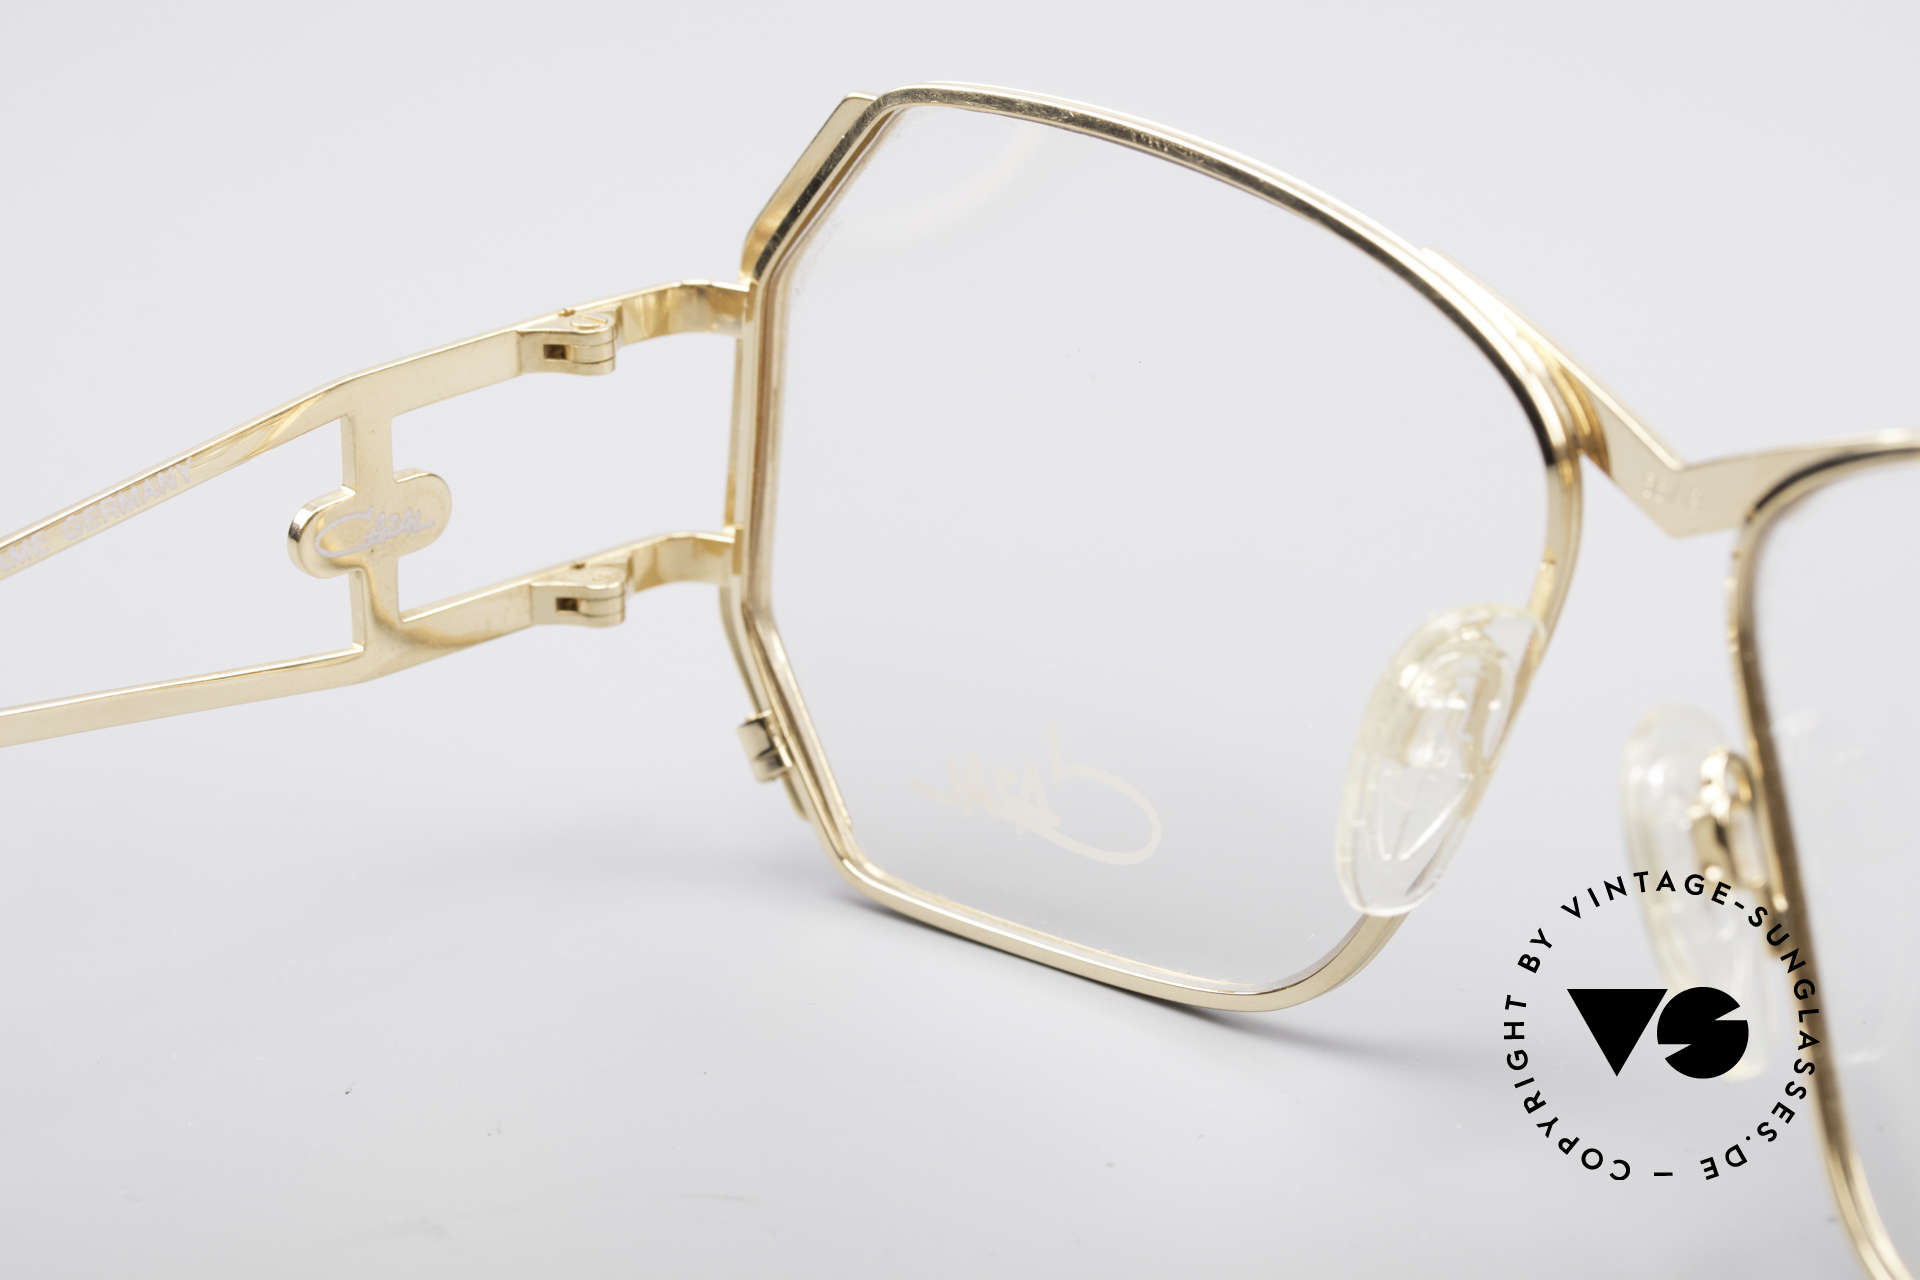 Cazal 225 80's Old School HipHop Frame, Size: medium, Made for Women